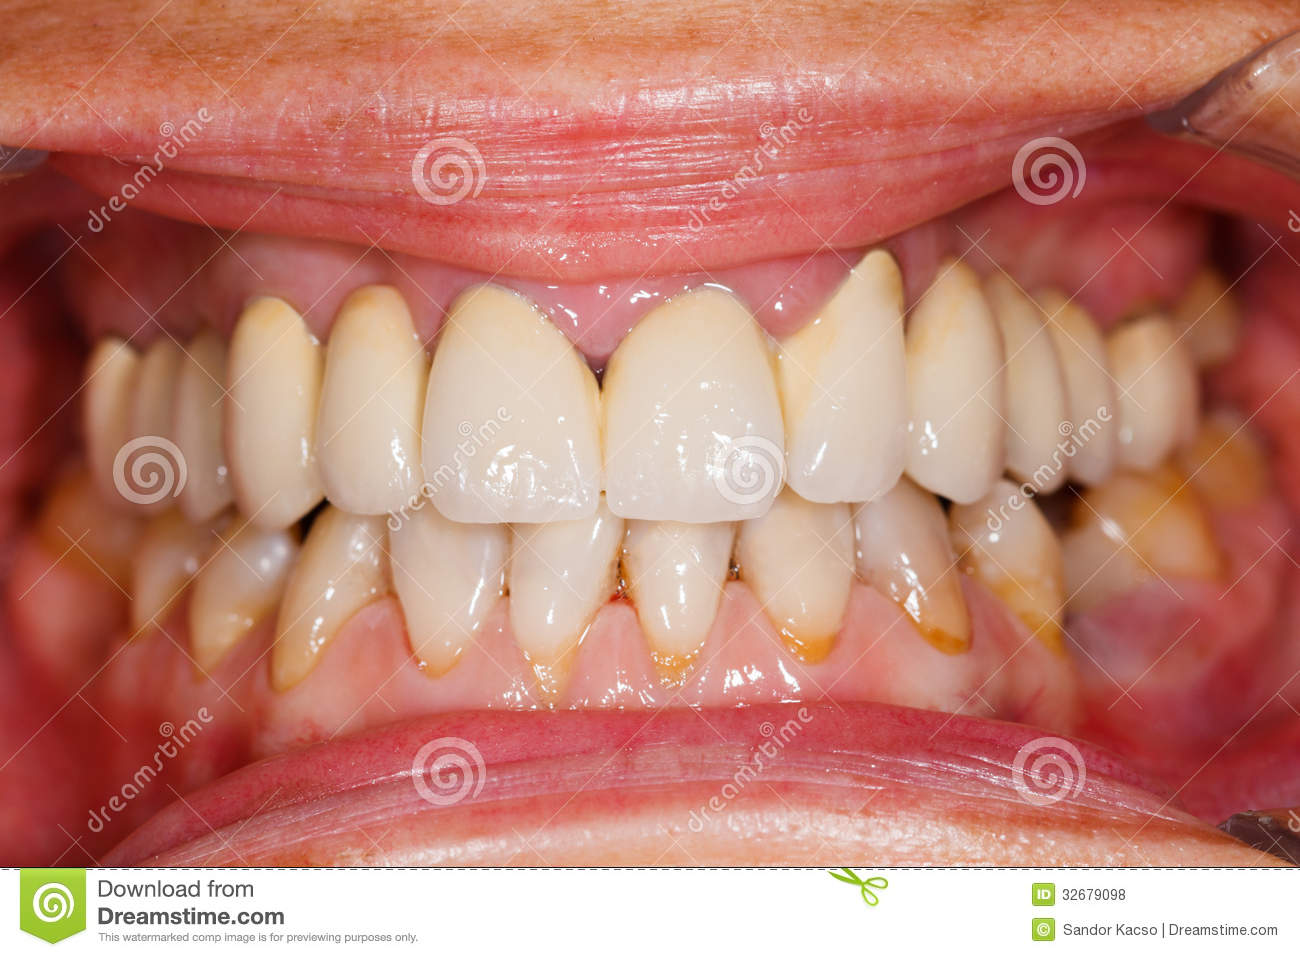 Porcelain Teeth In Human Mouth Stock Image Image Of Human Up